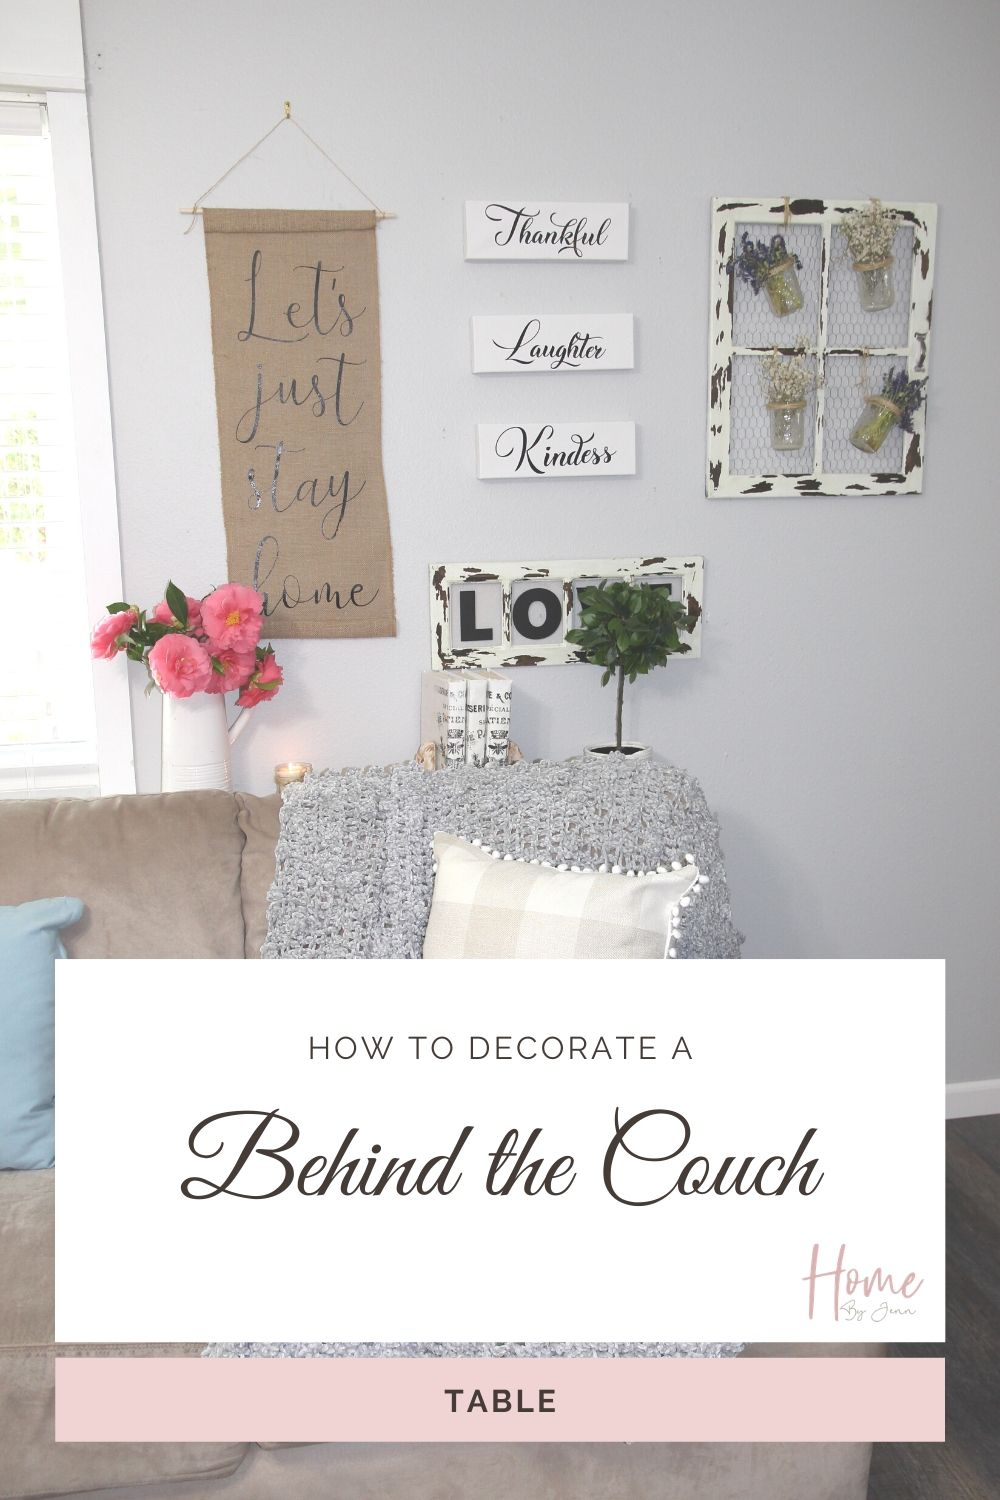 How to Decorate a Behind the Couch Table